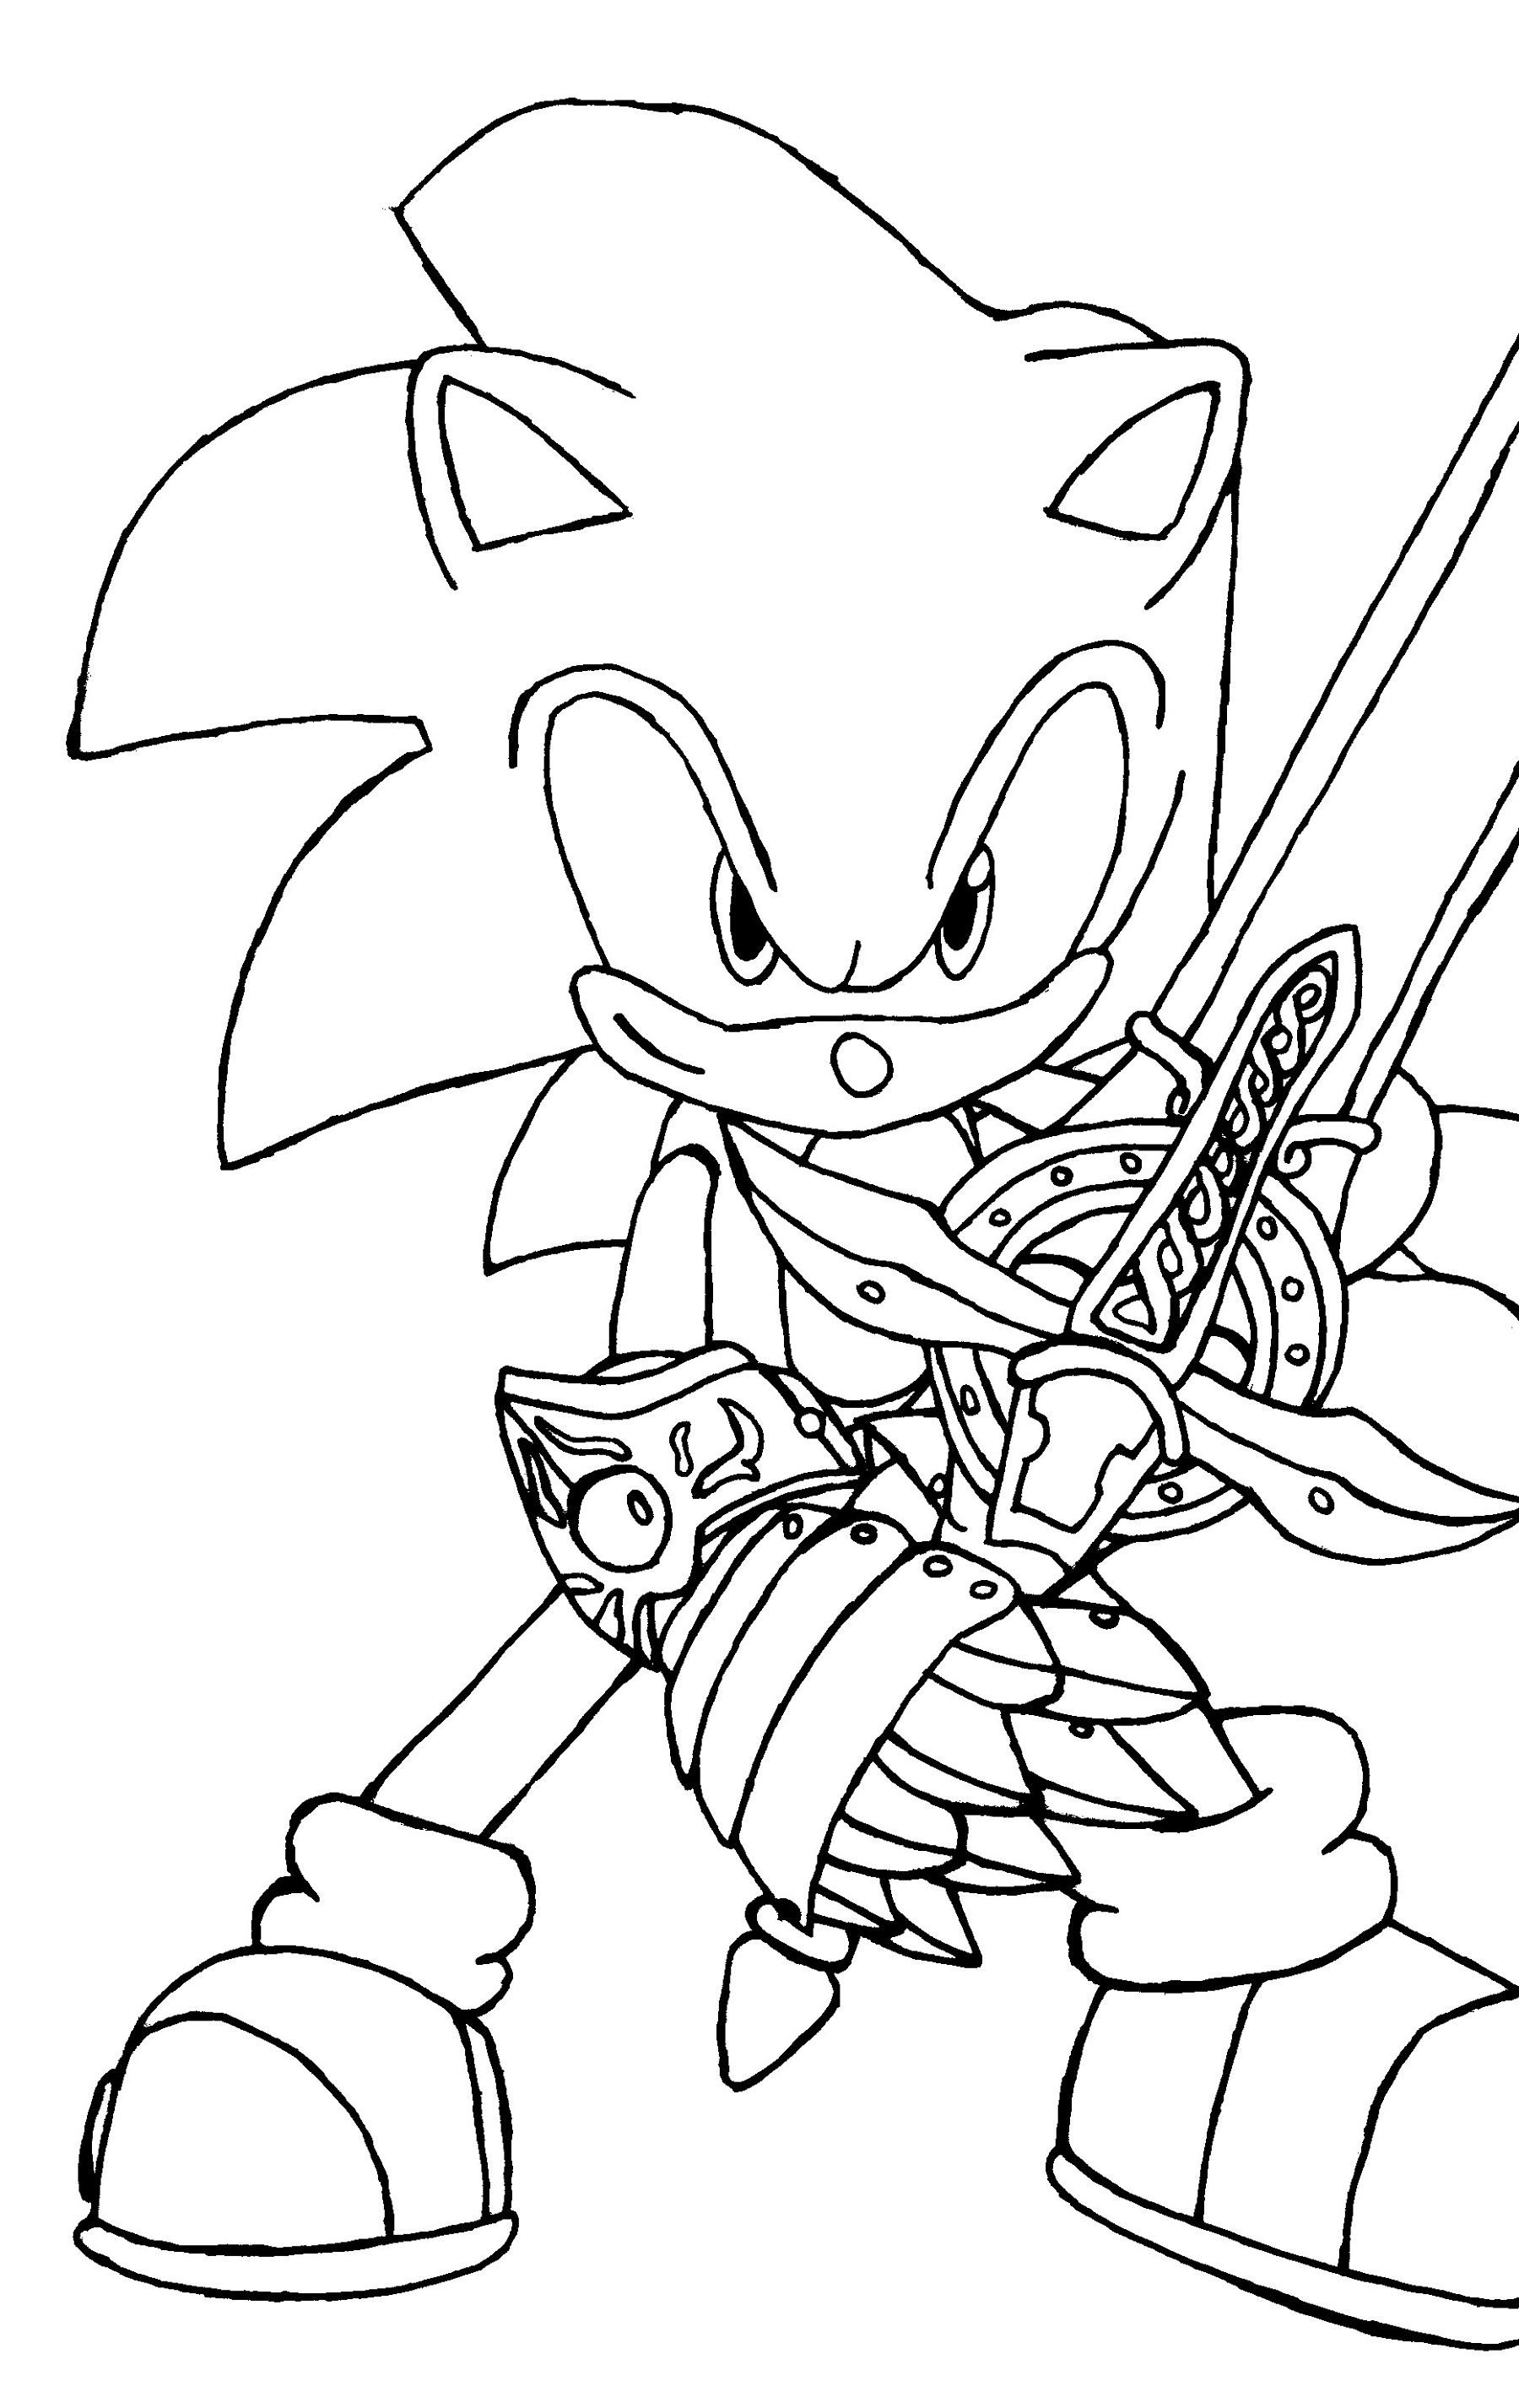 Sonic The Hedgehog Coloring Pages For Kids